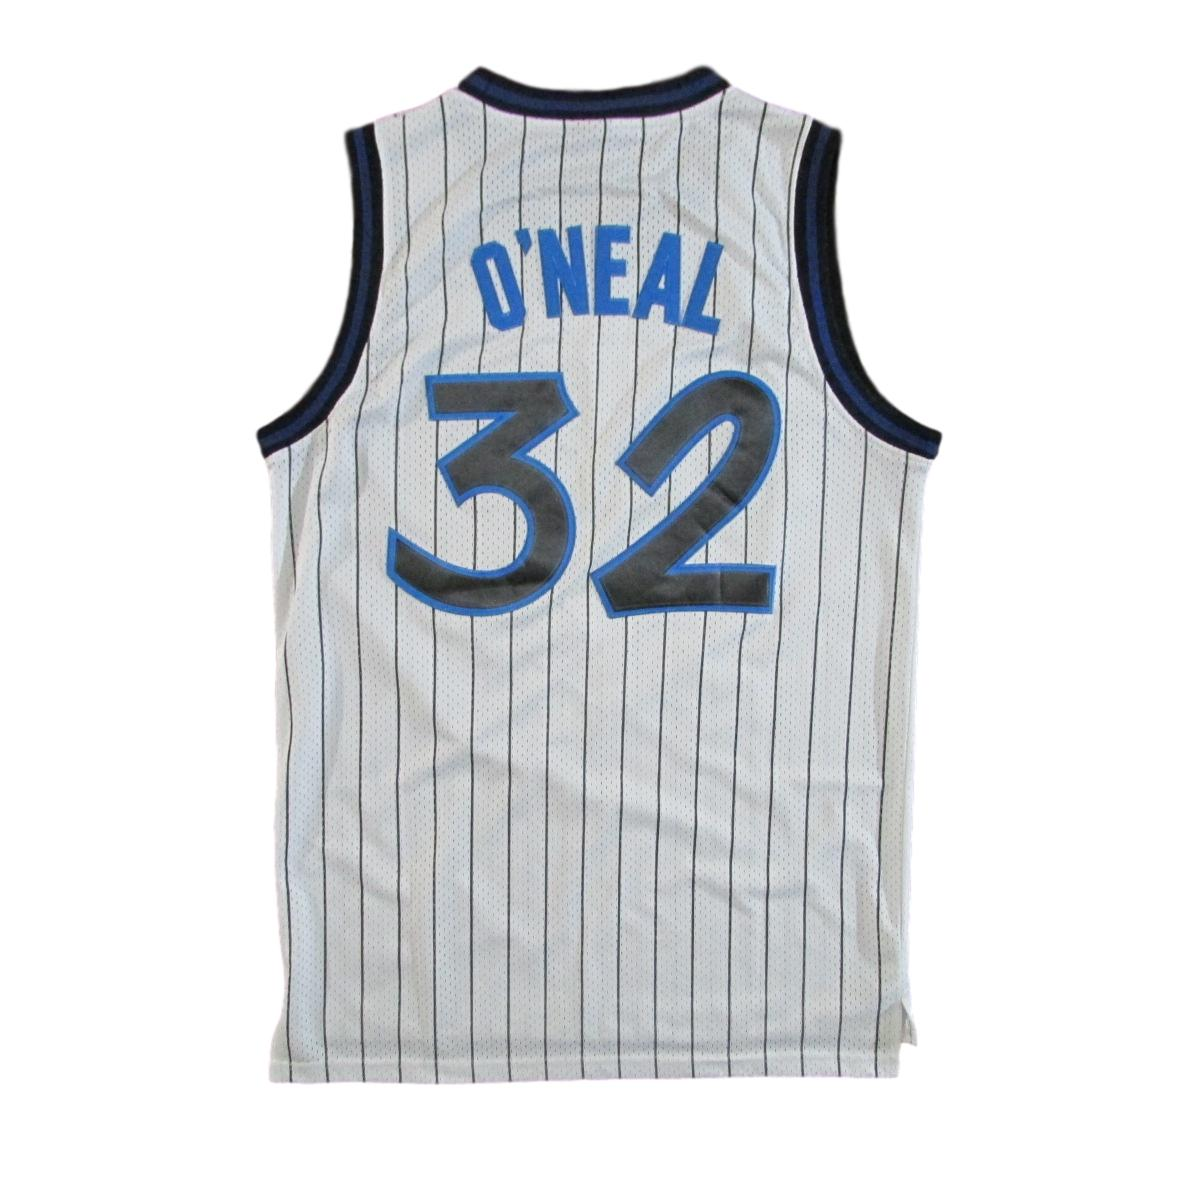 Orlando Magic Shaquille O'Neal Home Edition Pinstripes 1989 Basketball Jersey Nike Sz M